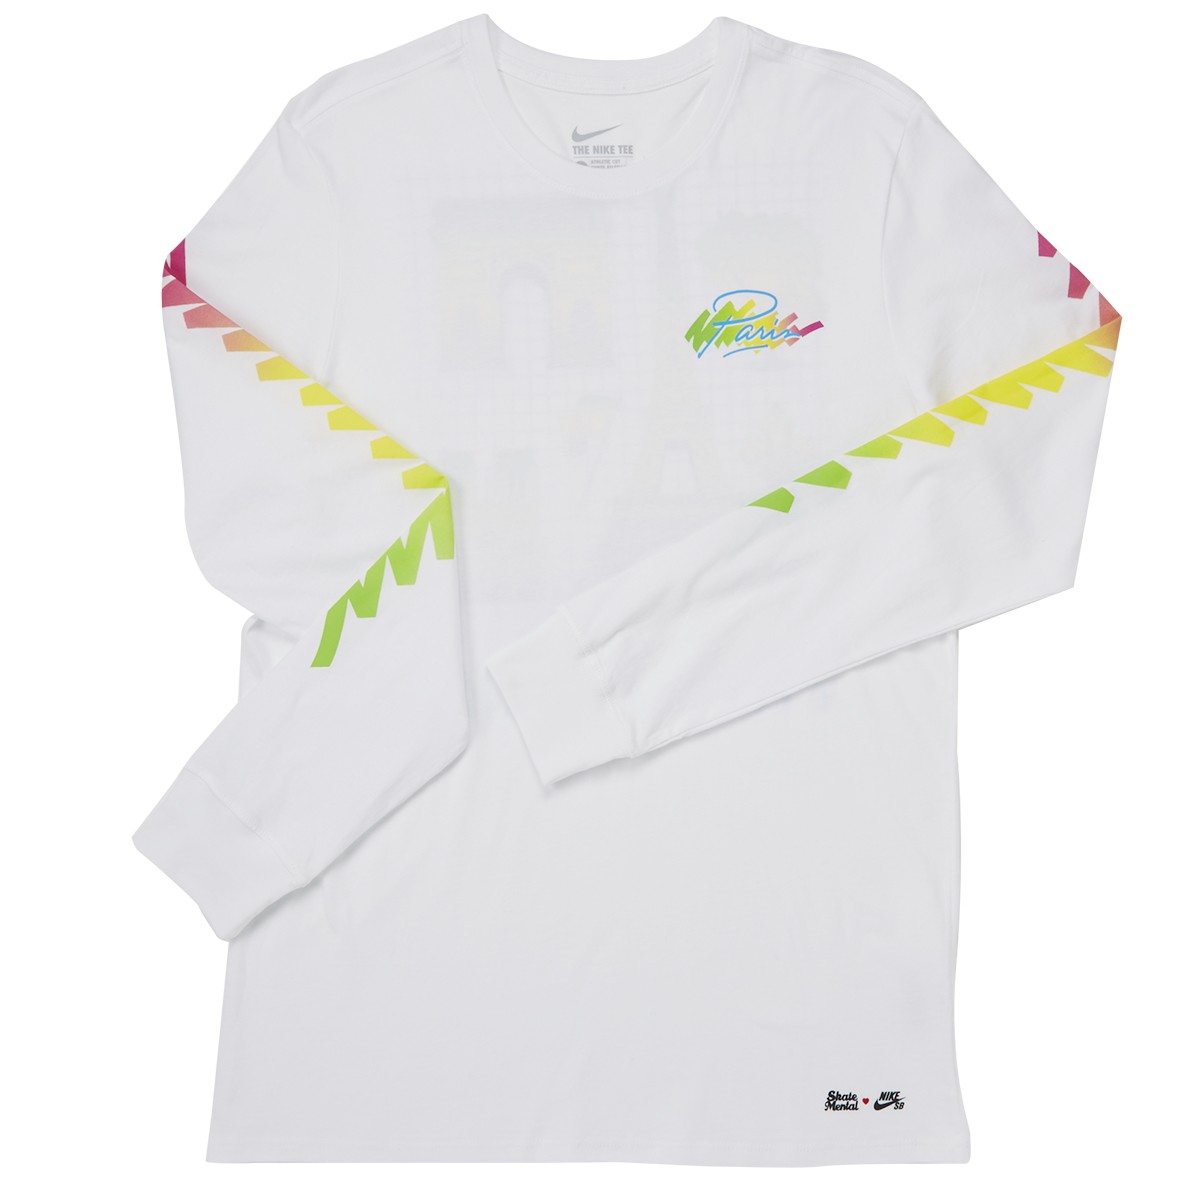 b738abce Nike Sb Cat Scratch T Shirt Uk – EDGE Engineering and Consulting Limited